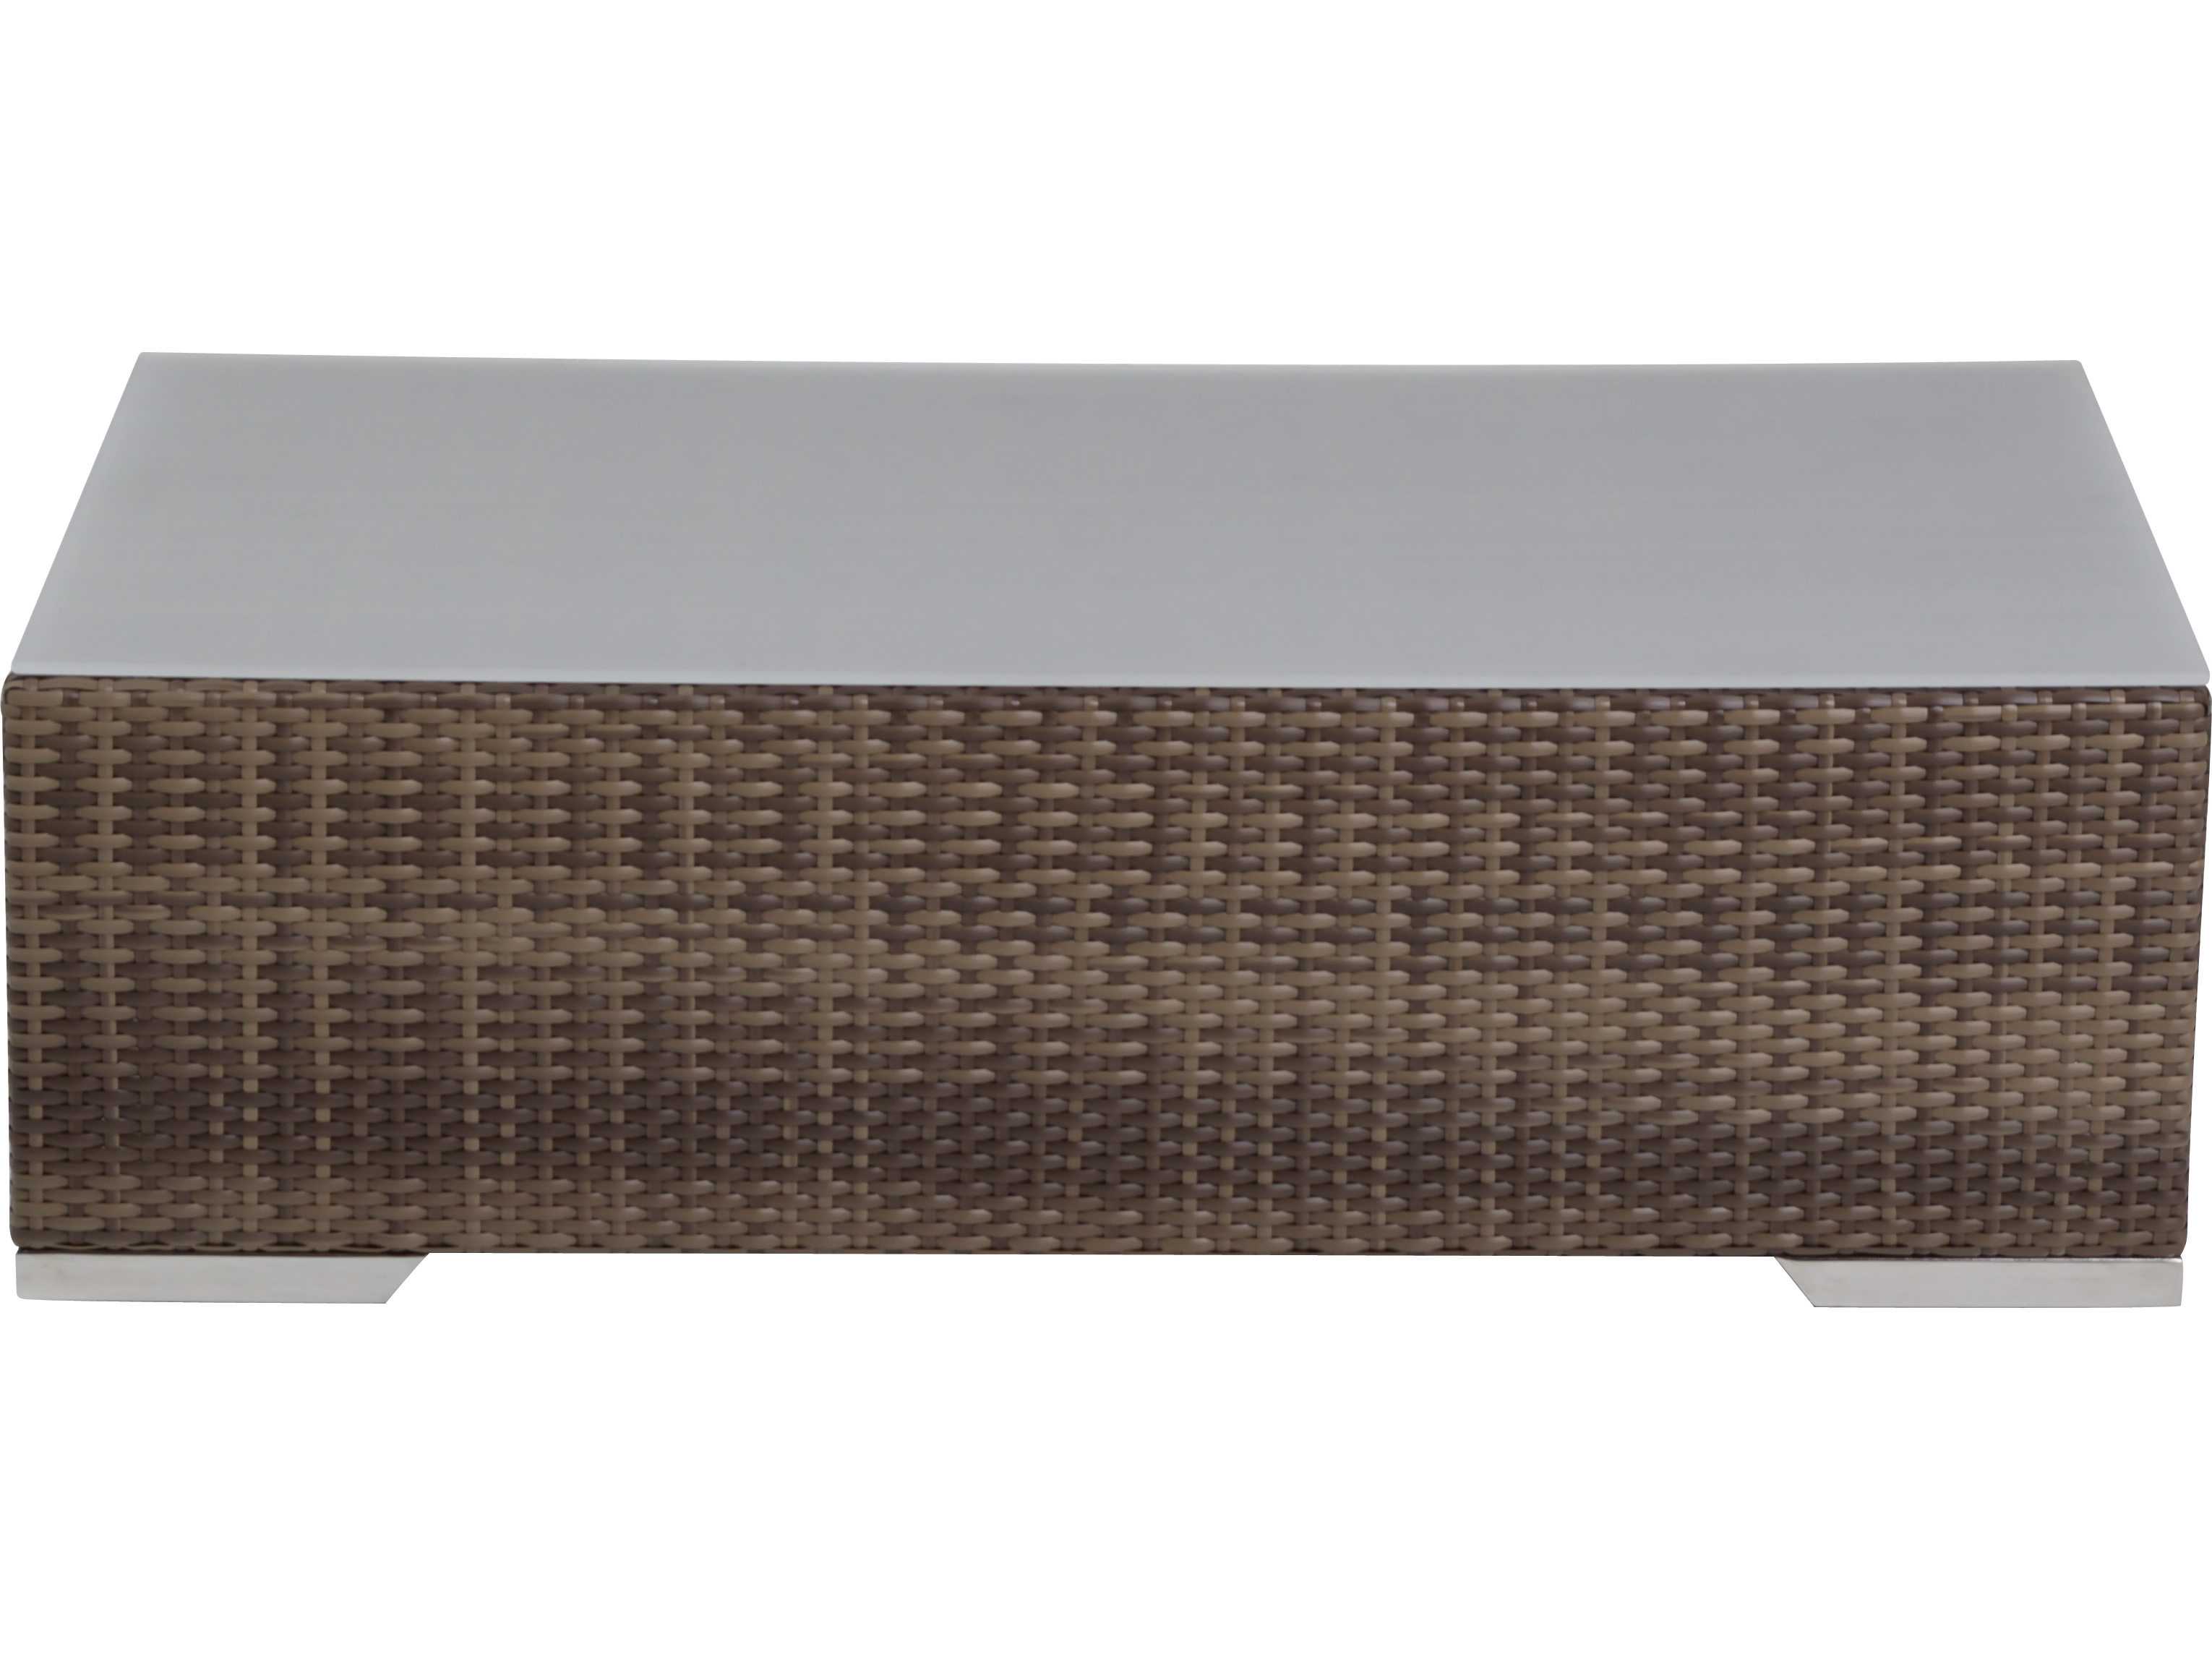 Tropitone arzo woven cushion 41 x 26 rectangular coffee table tropitone arzo woven cushion 41 x 26 rectangular coffee table 641453afr geotapseo Image collections